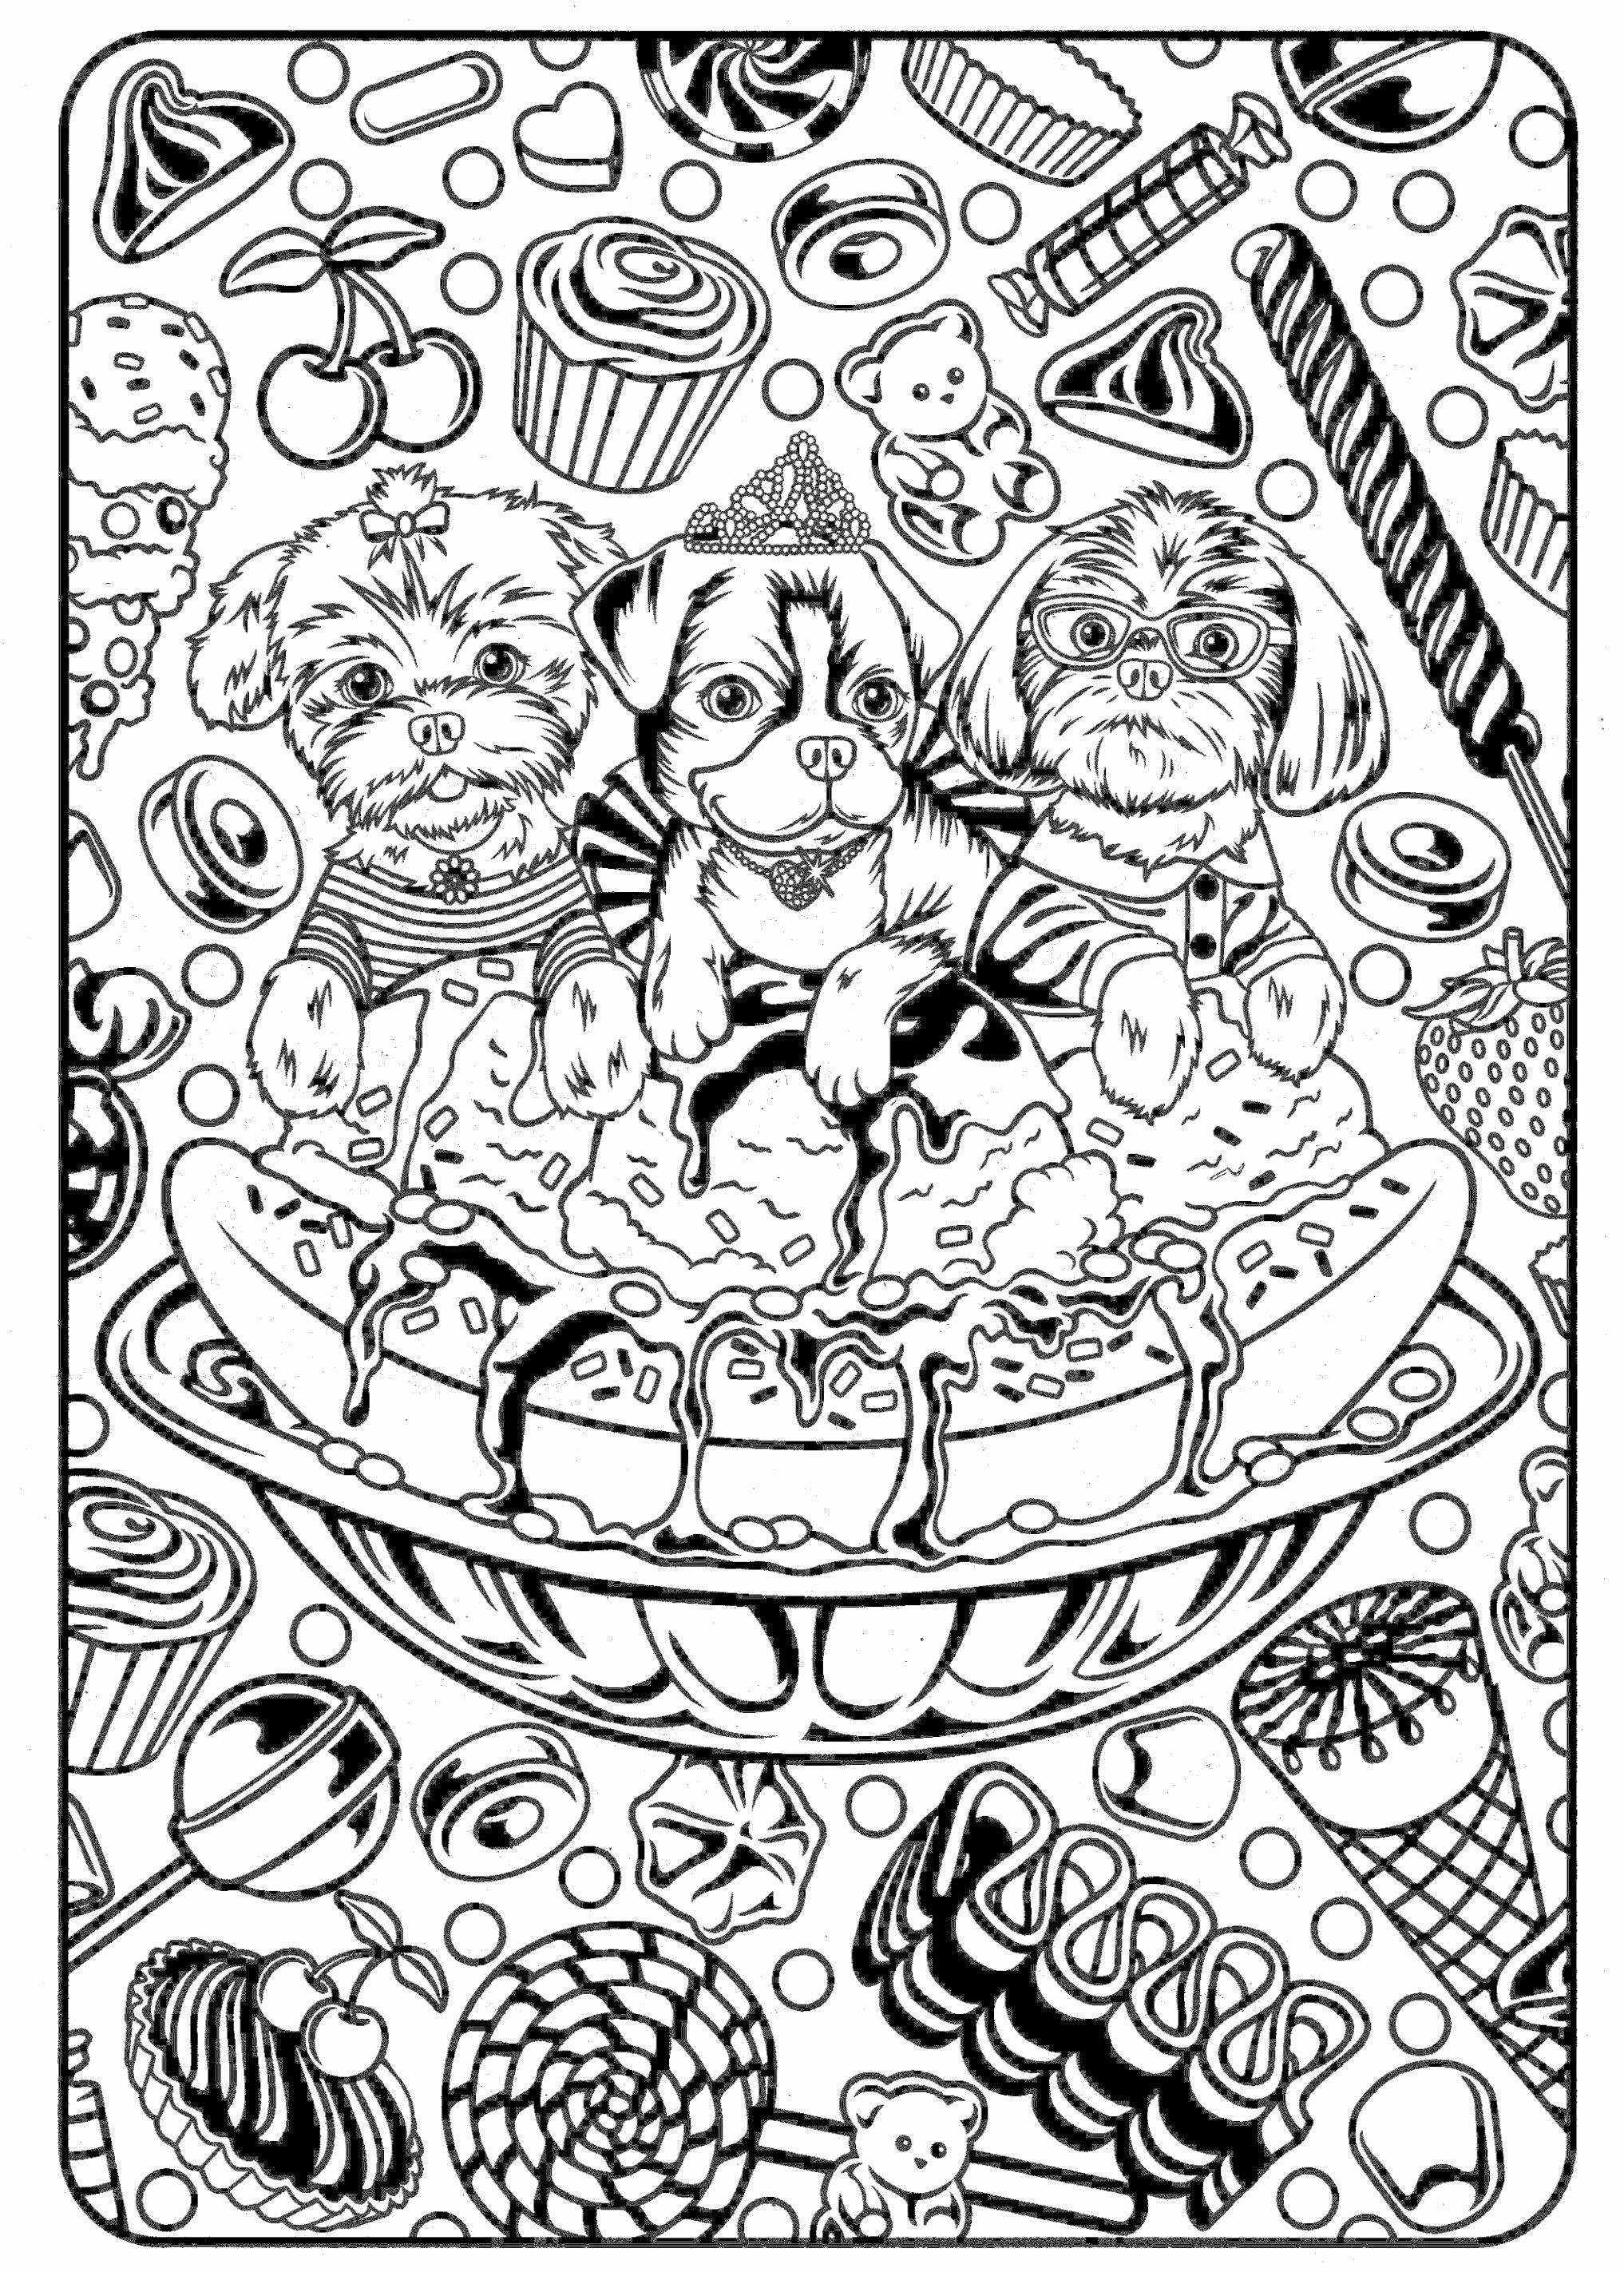 Newest Photographs Coloring Sheets Dragon Tips It S Not A Key That Coloring Books Regarding G In 2021 Pokemon Coloring Pages Summer Coloring Pages Space Coloring Pages [ 2845 x 2034 Pixel ]